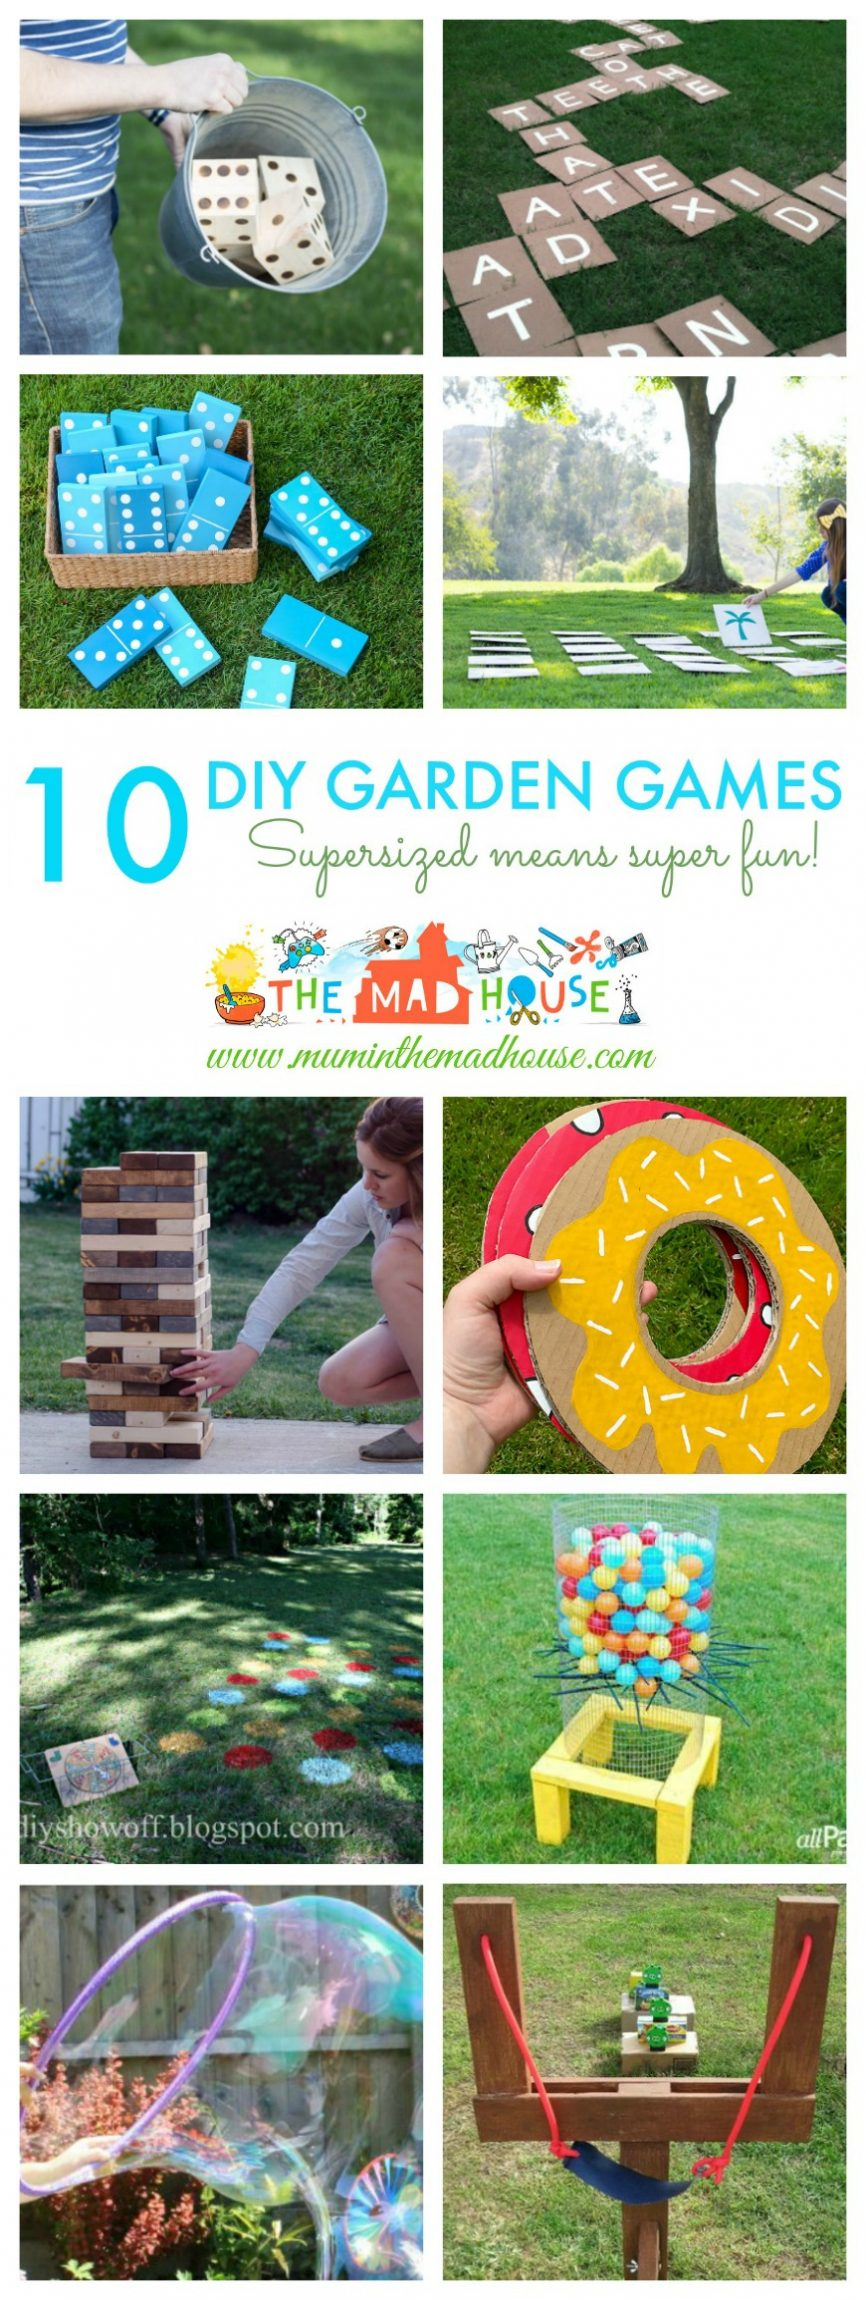 10-Giant-DIY-Garden-Games-pin-866x2300.jpg